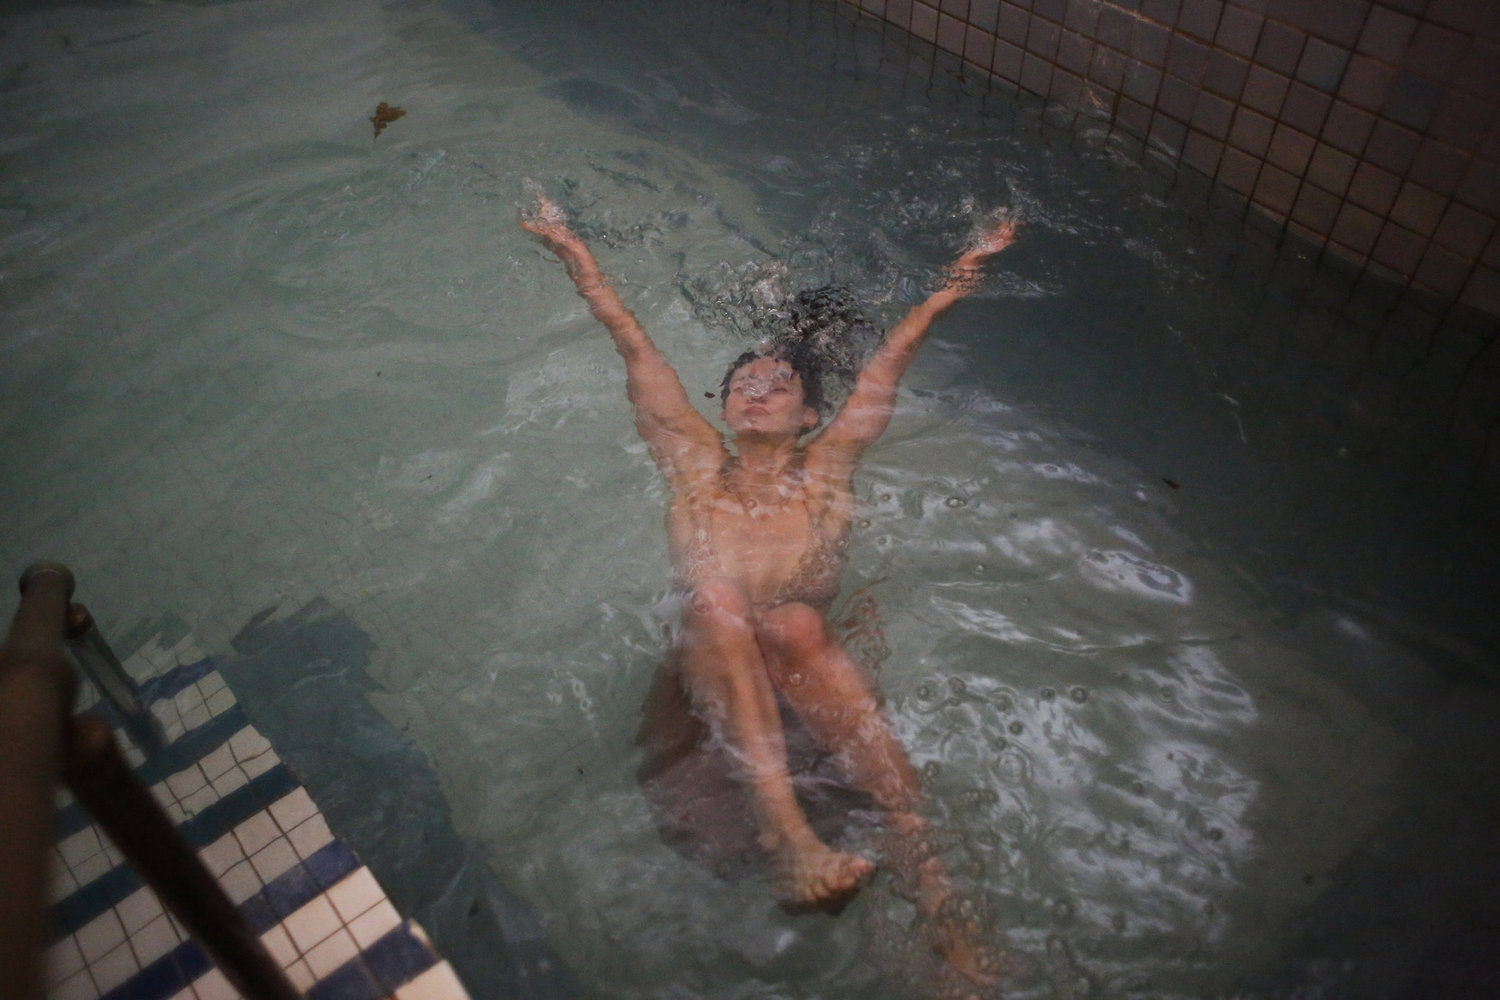 Vanessa Luczun takes a dip in the 45-degree pool in the center of the bathhouse after heating up in the saunas.